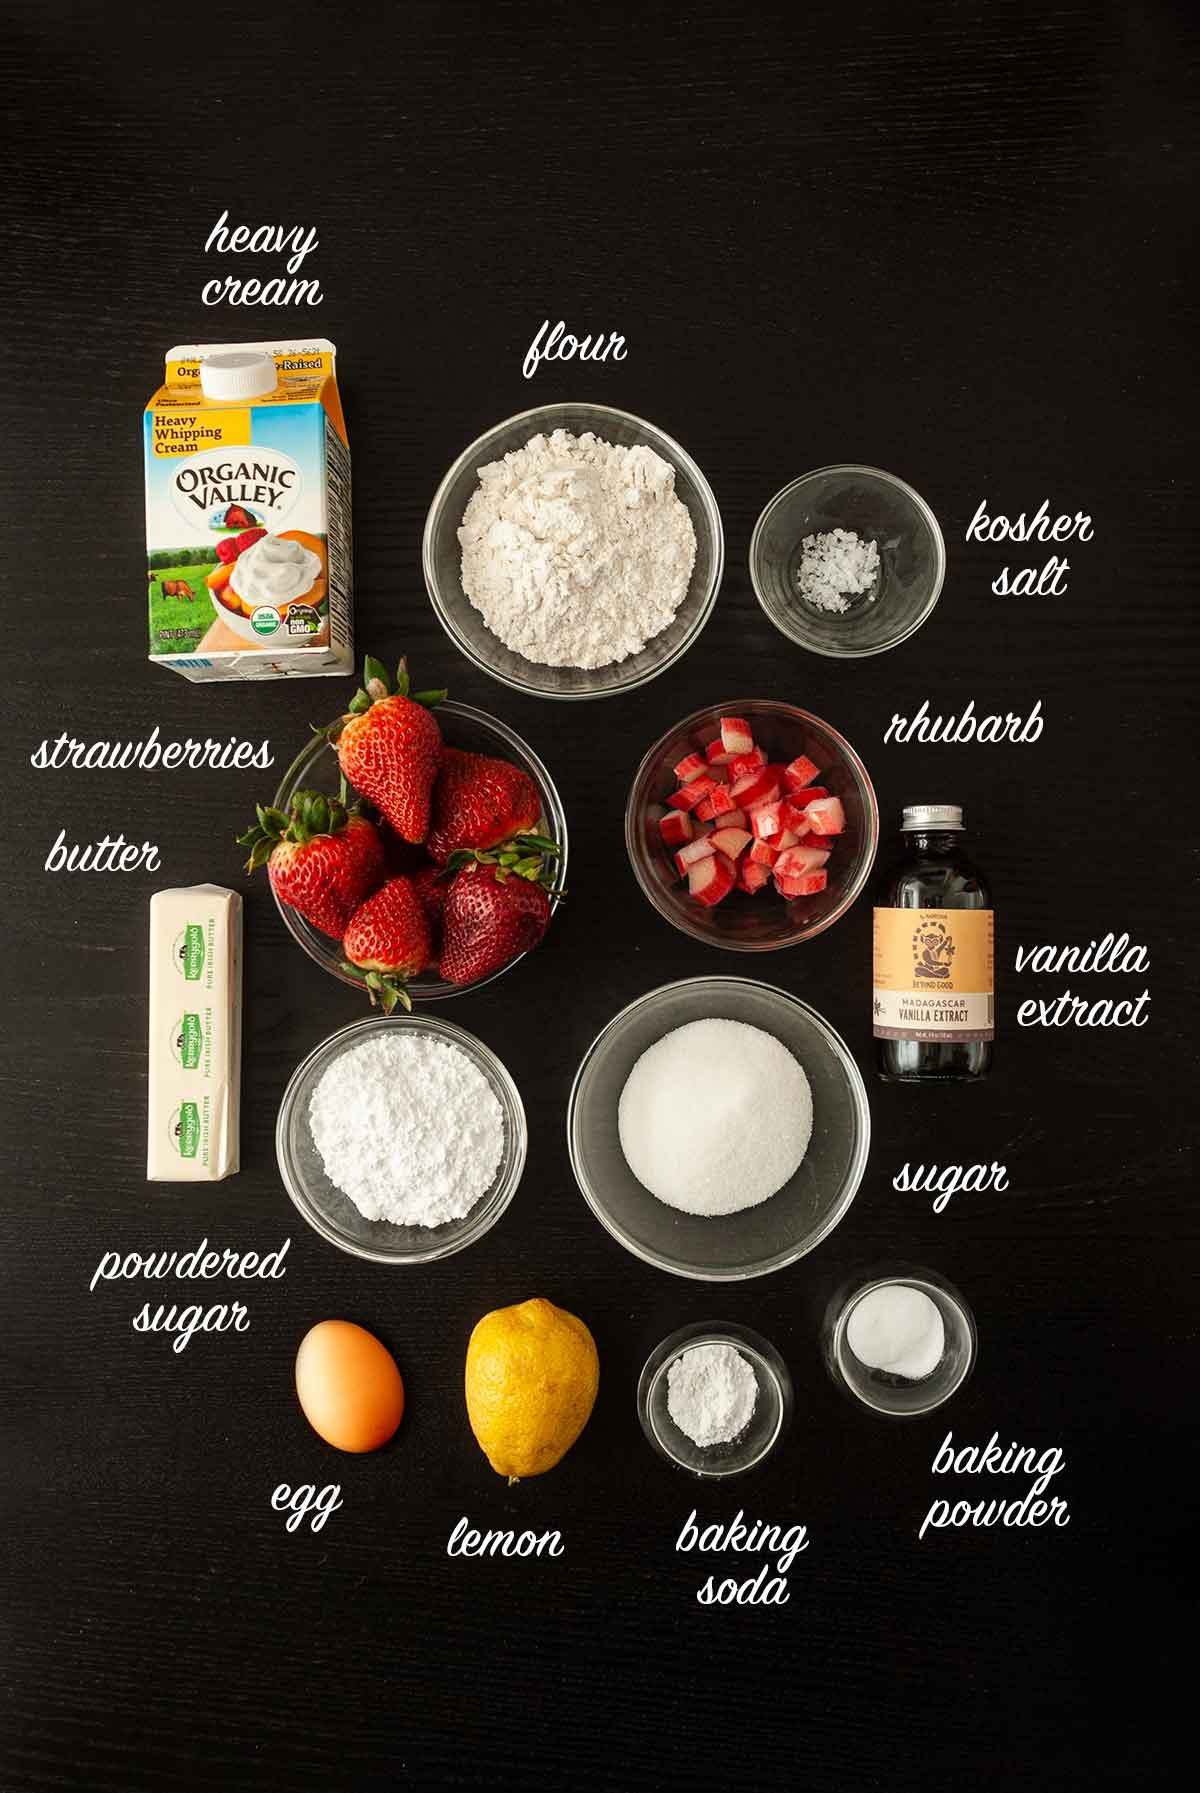 Ingredients on a dark table with titles for each ingredient.